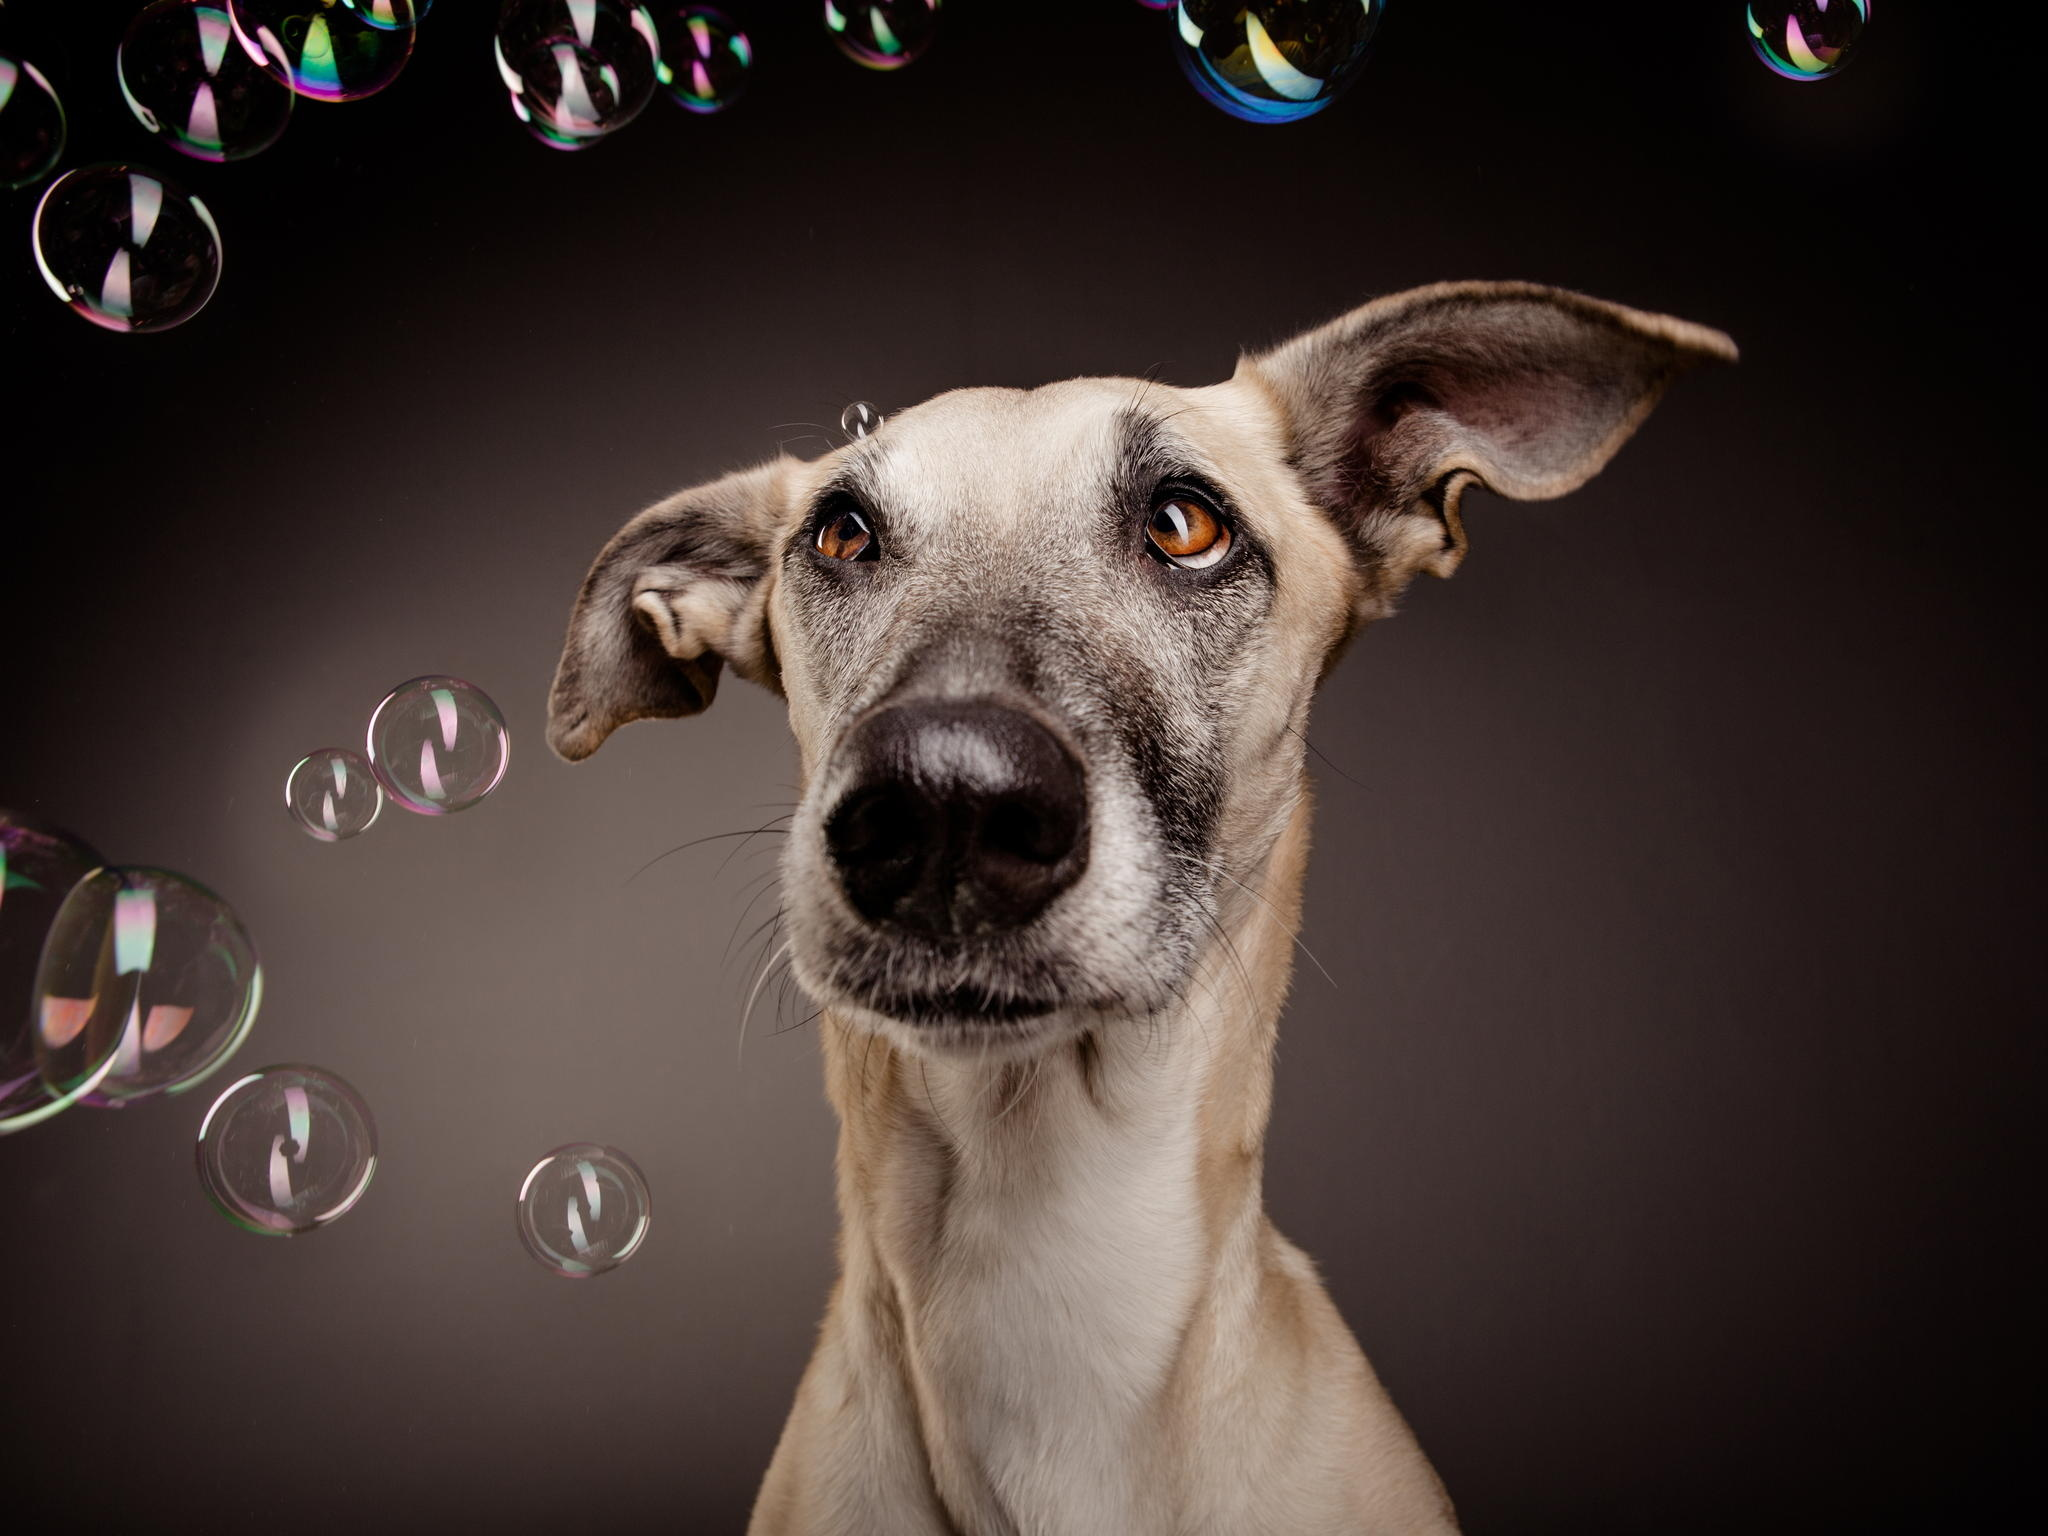 128554 download wallpaper Animals, Dog, Bubble, Bubbles, Surprise, Astonishment screensavers and pictures for free